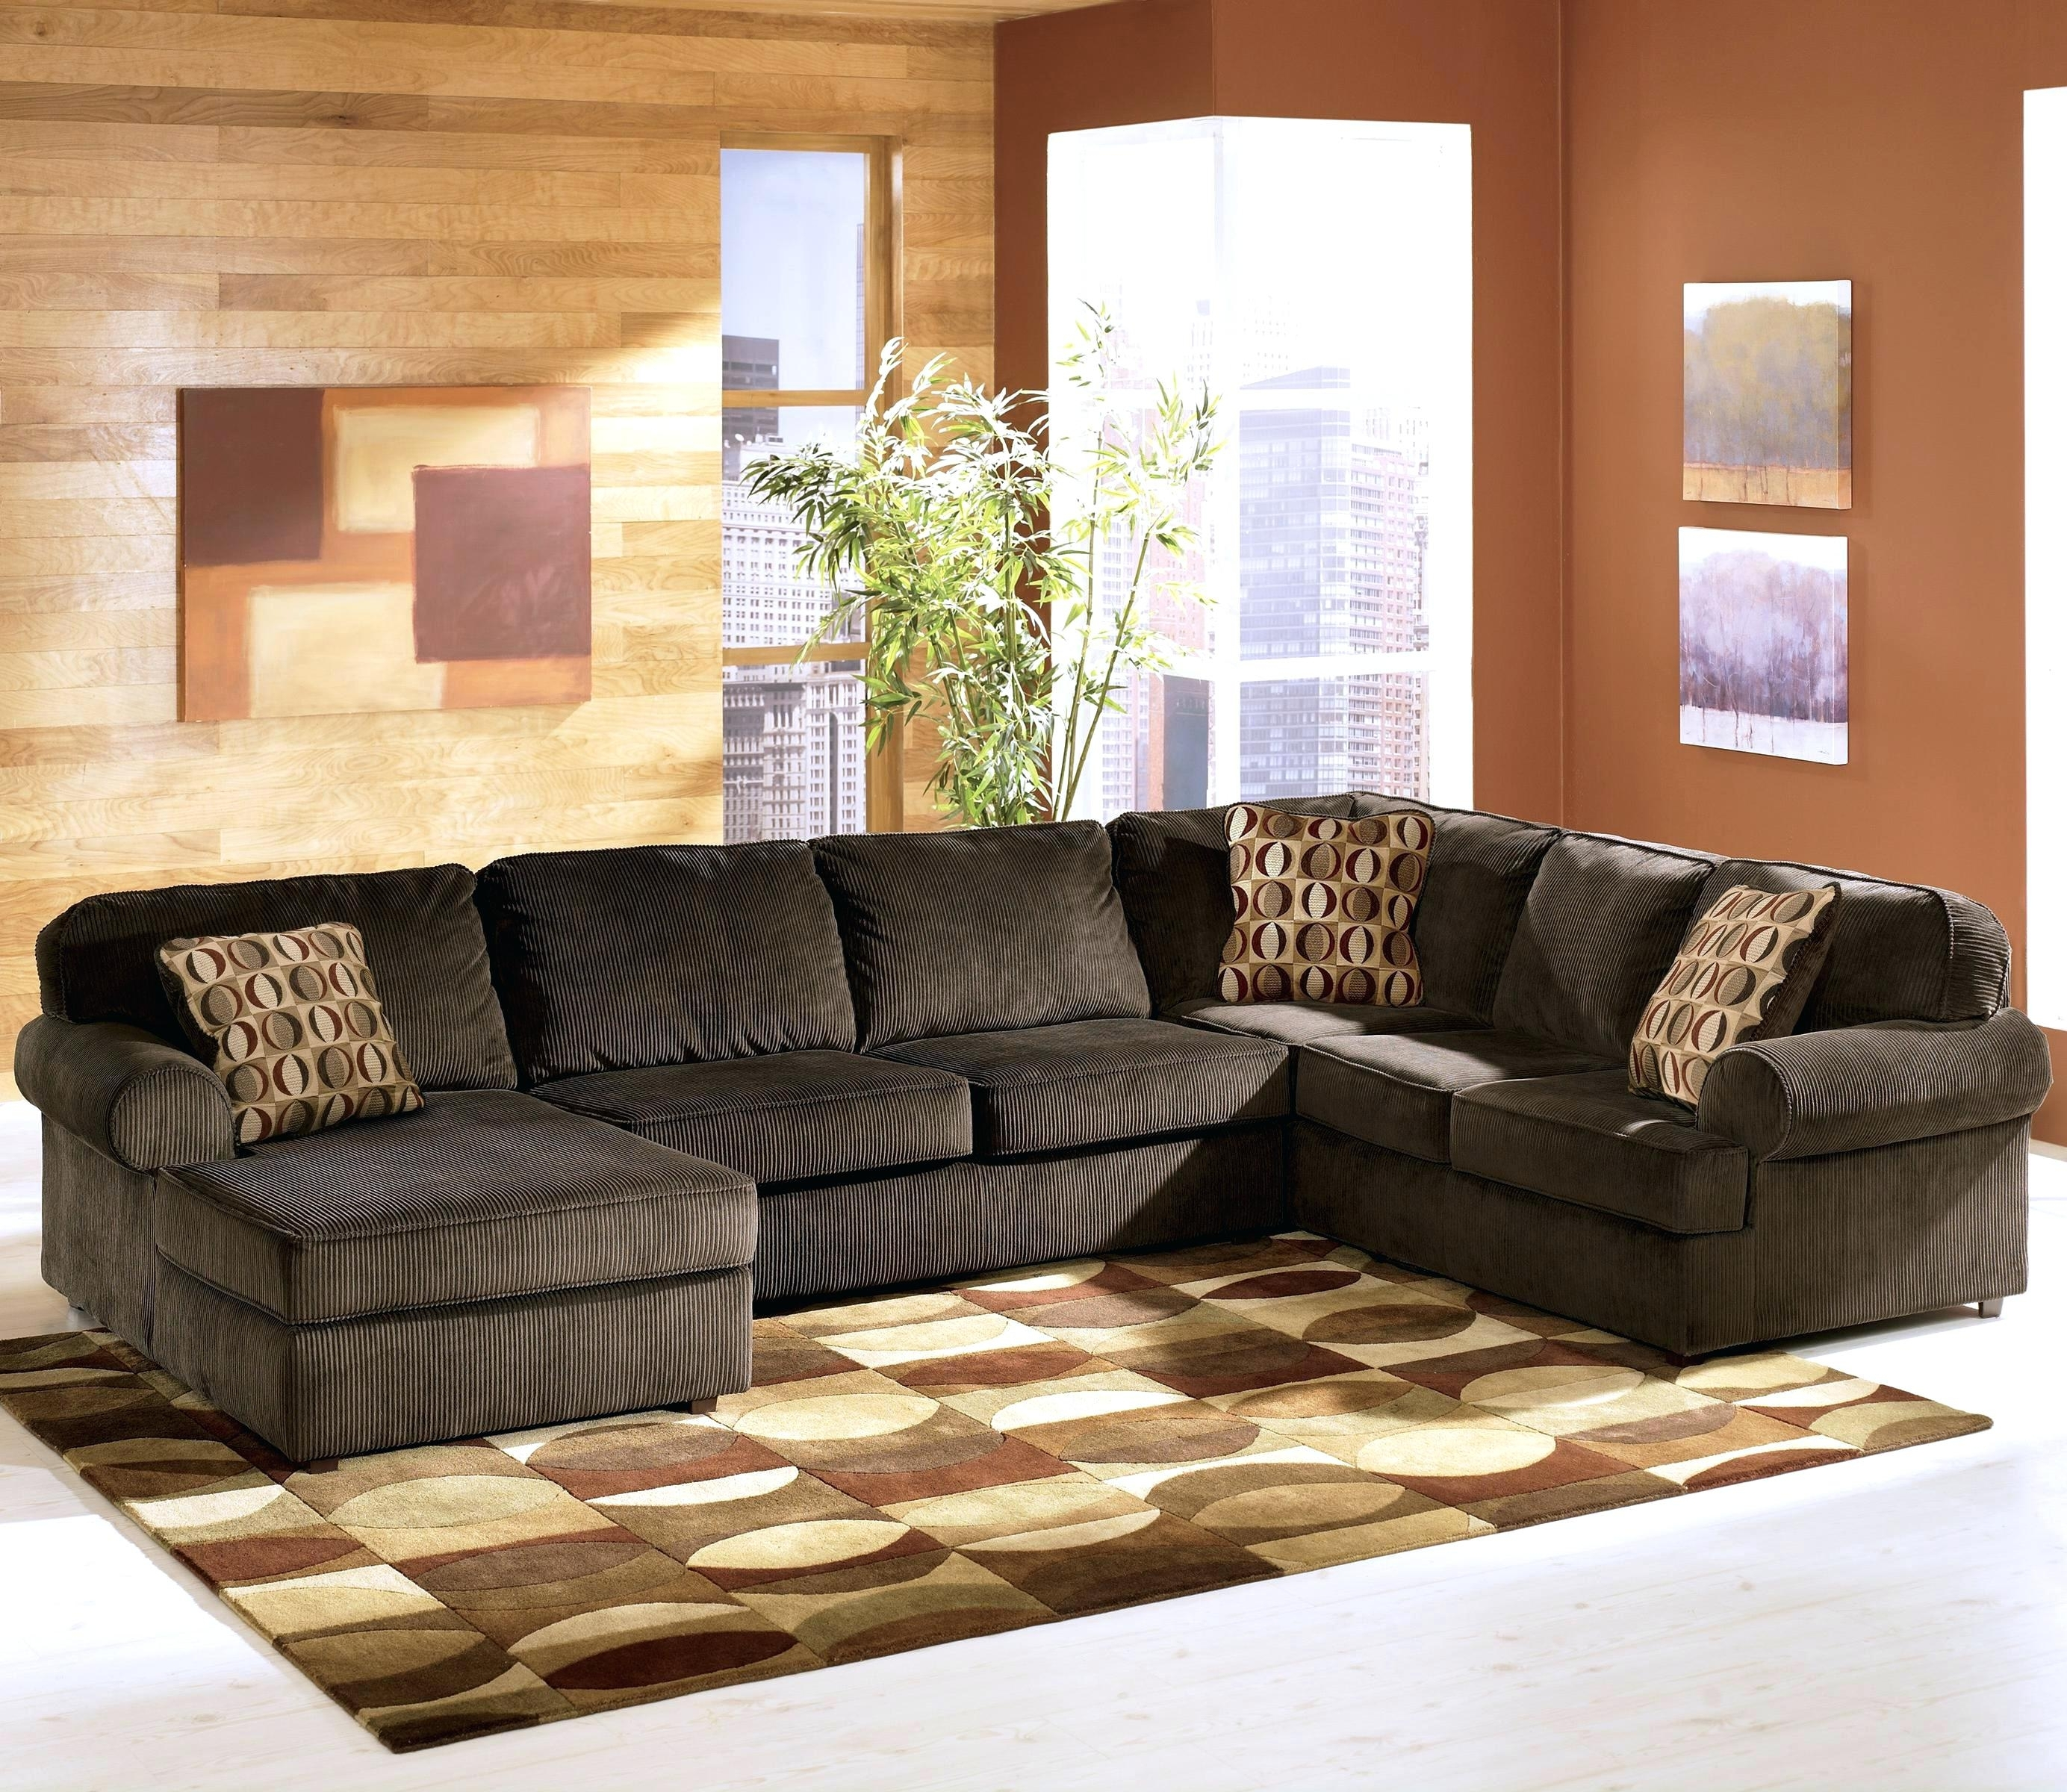 Furniture Sectional Sofas Furniture Vista Chocolate Casual 3 Piece Regarding Sectional Sofas At Bad Boy (View 13 of 15)